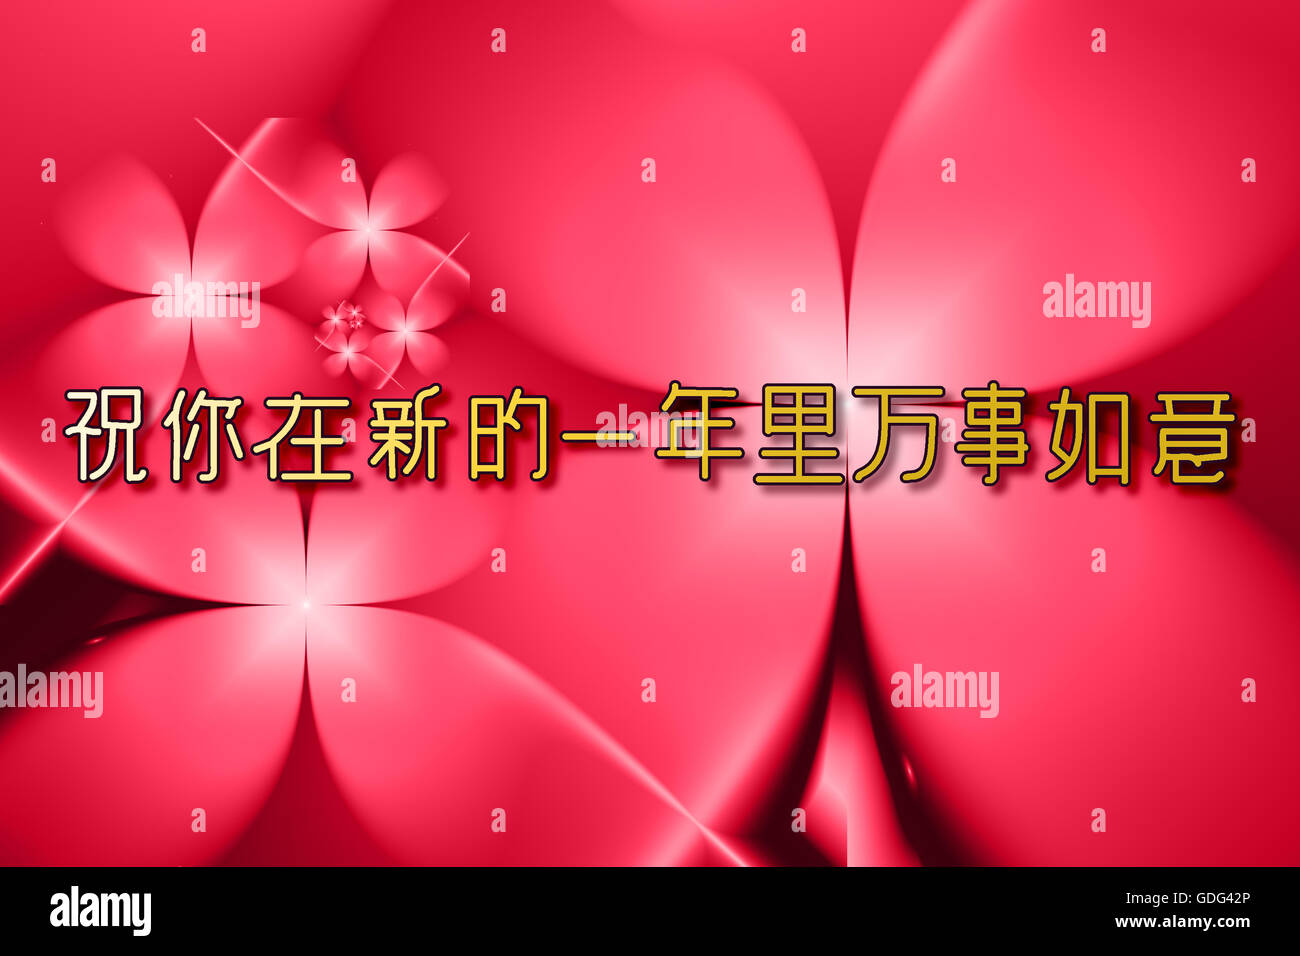 Wishes of prosperous new year written in Chinese characters on vivid red floral design. - Stock Image